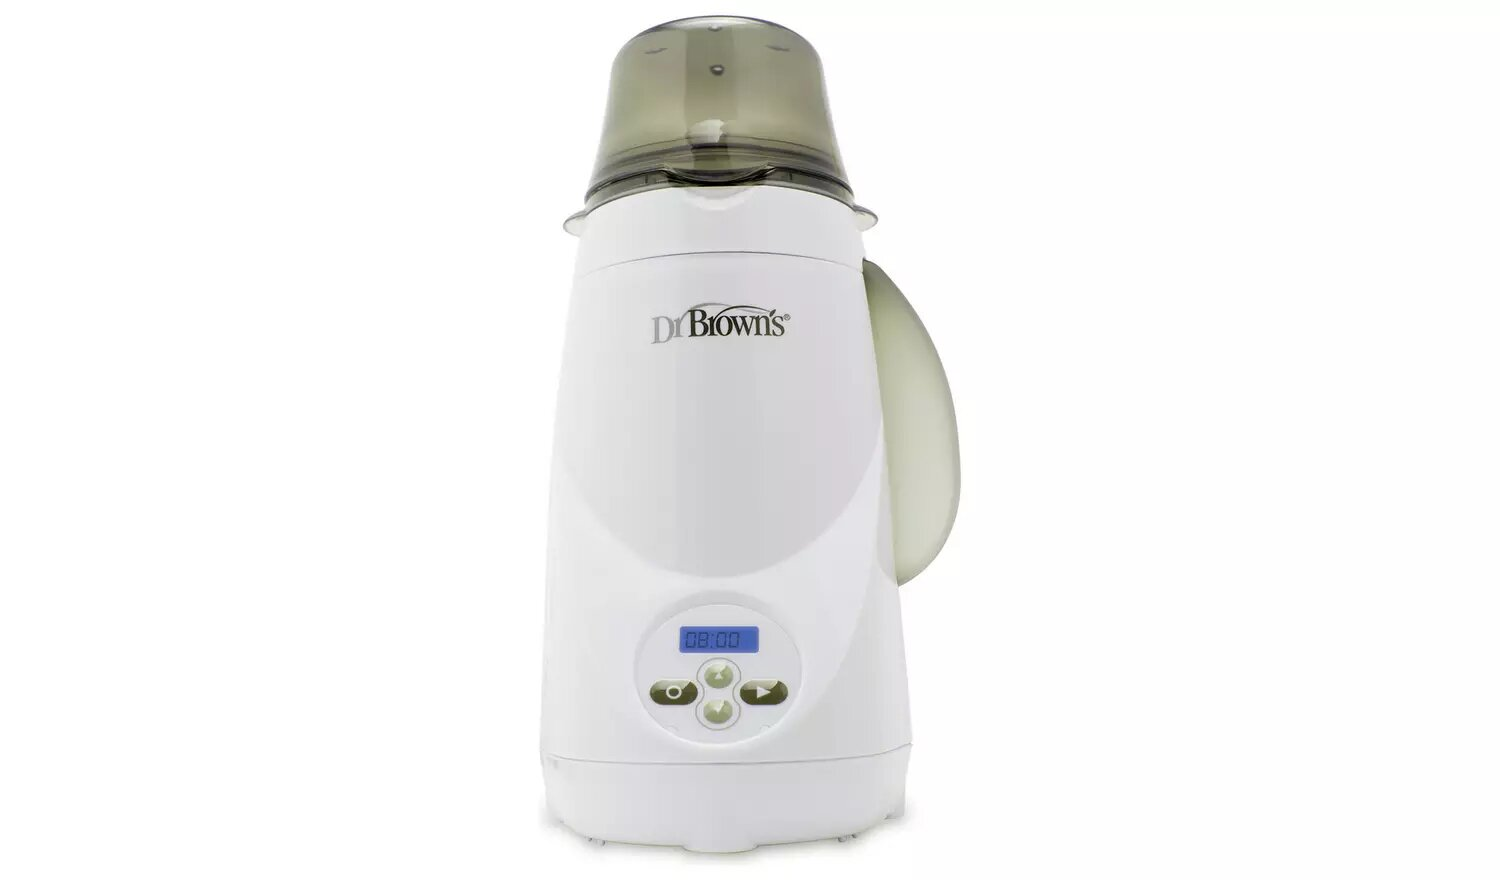 Dr Brown's Electric Deluxe Electric Baby Bottle Steriliser.